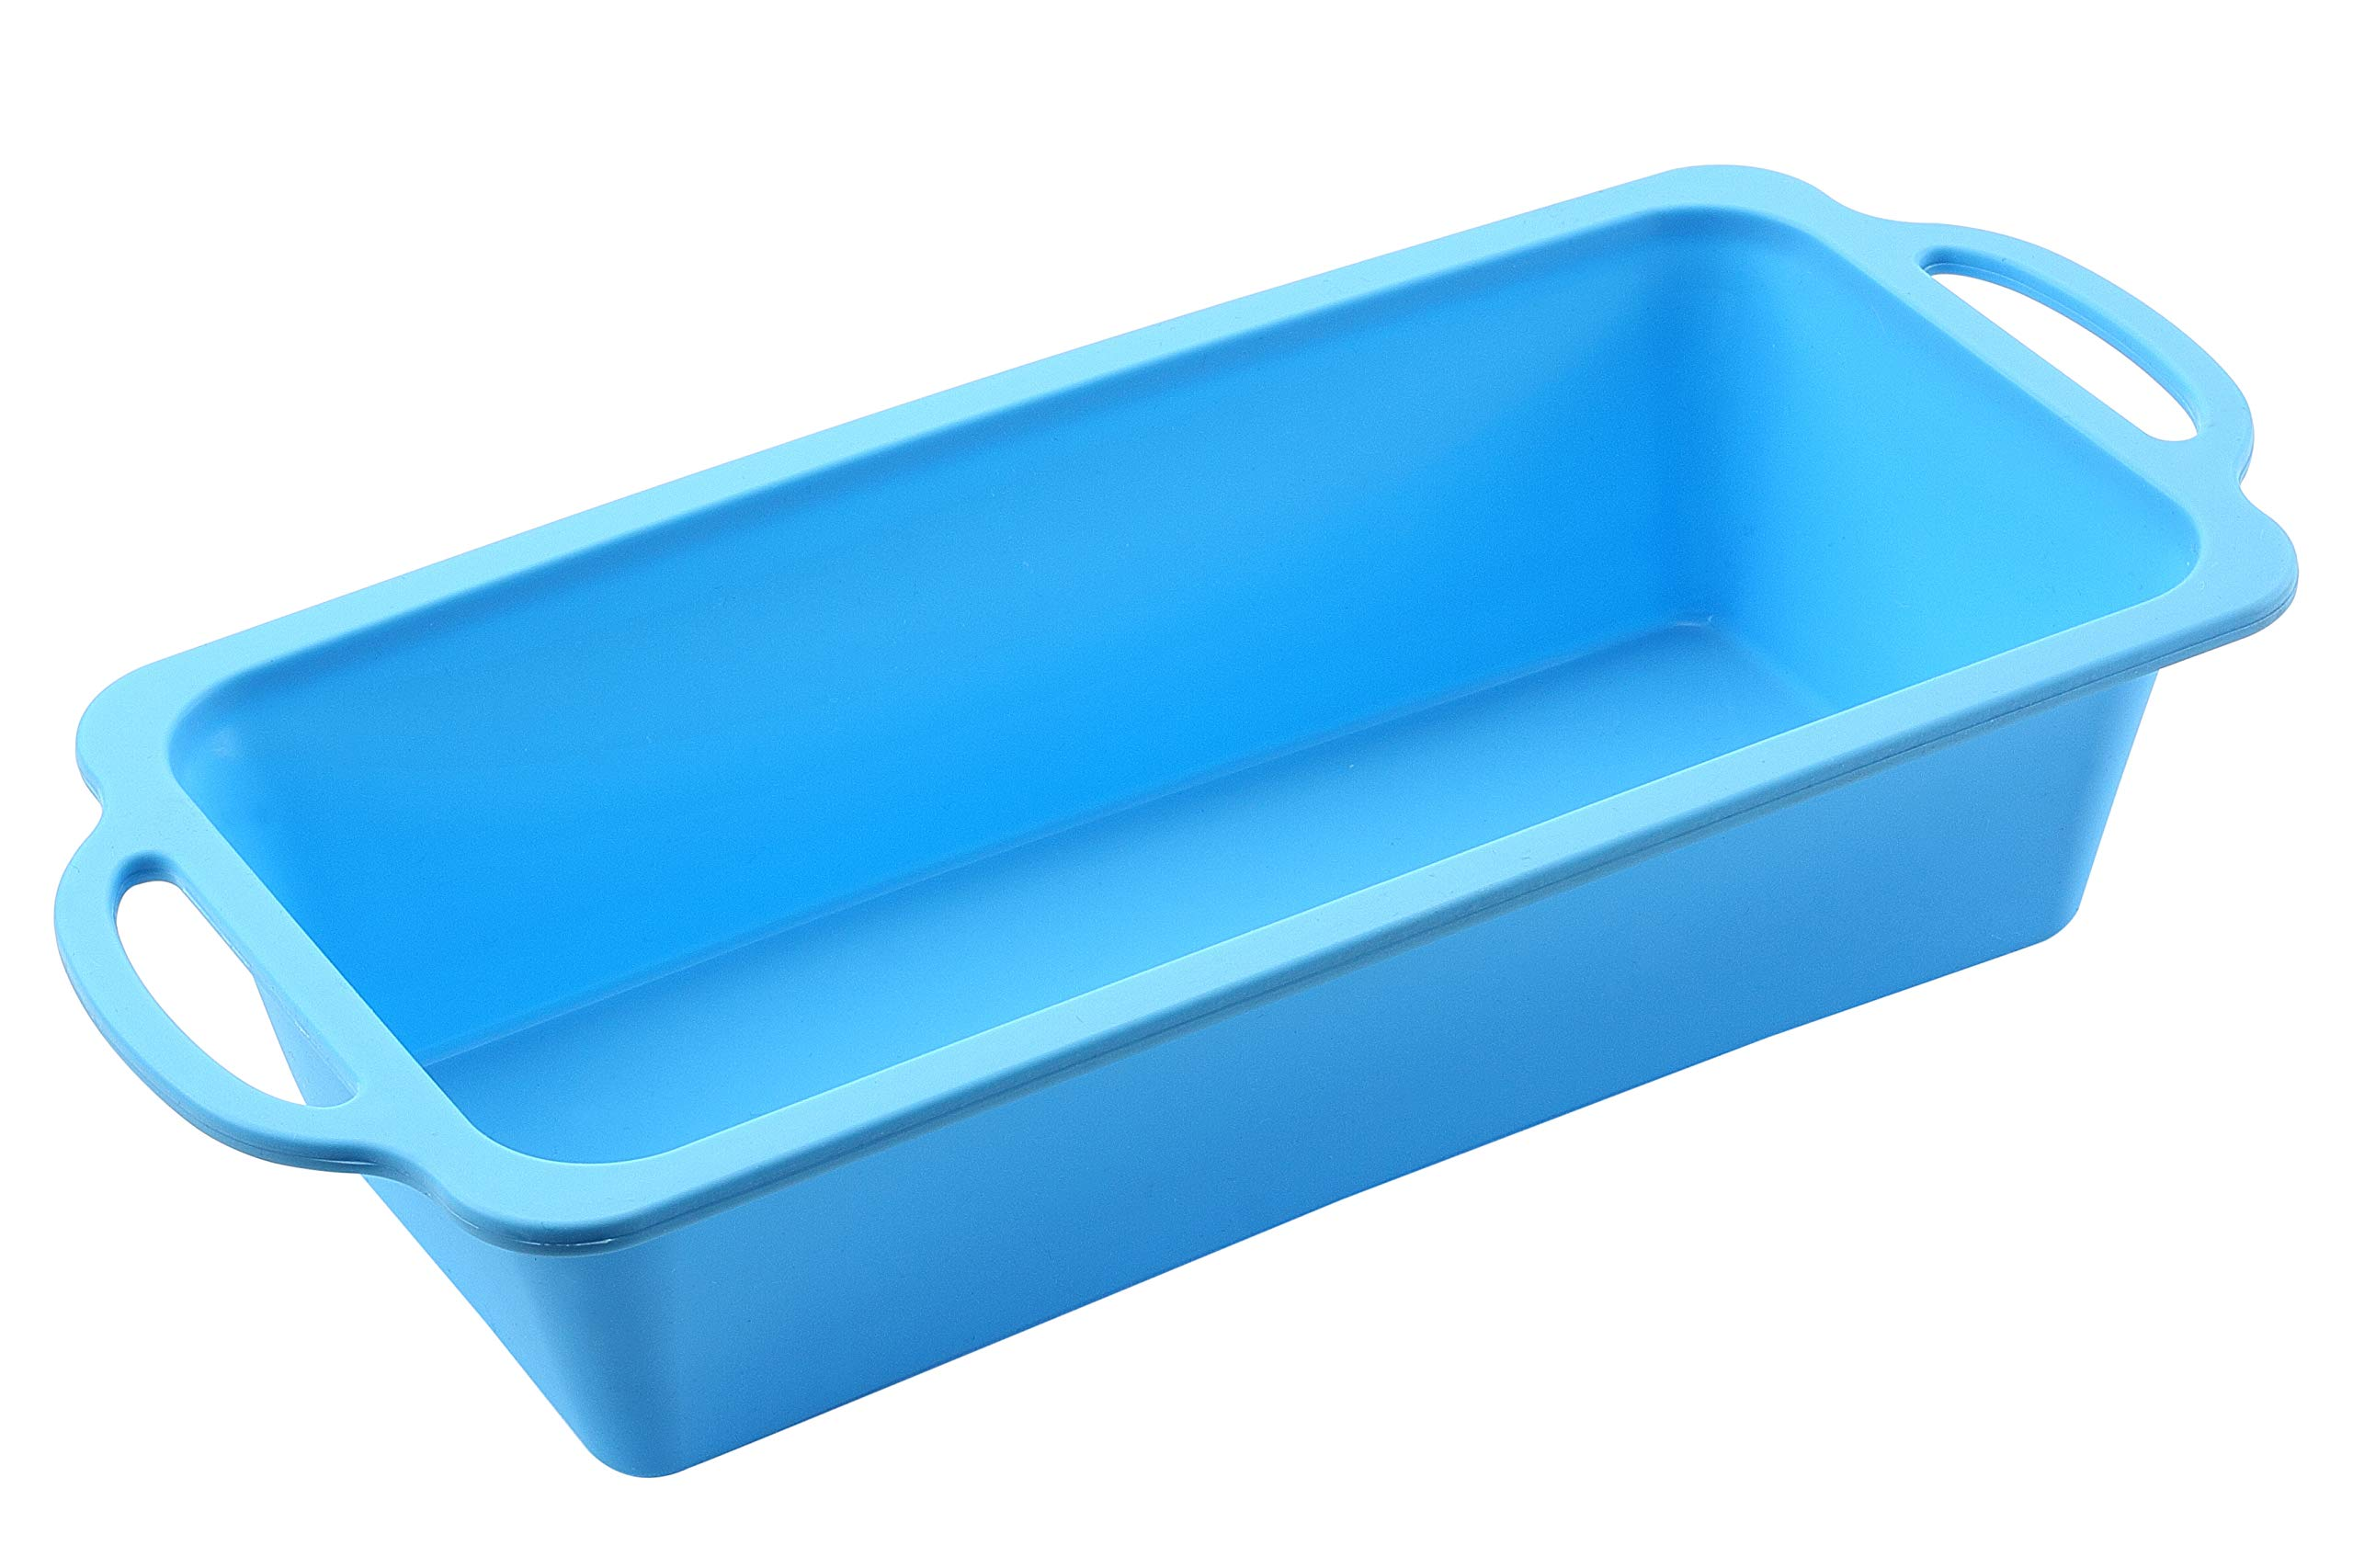 TRENDS home 10 Inch Loaf Silicone Baking Pan, Silicone Baking Molds, Banana Bread Pan. This silicone bakeware has durability & strength with Patented Reinforced Stainless Steel Frame. DISHWASHER SAFE.